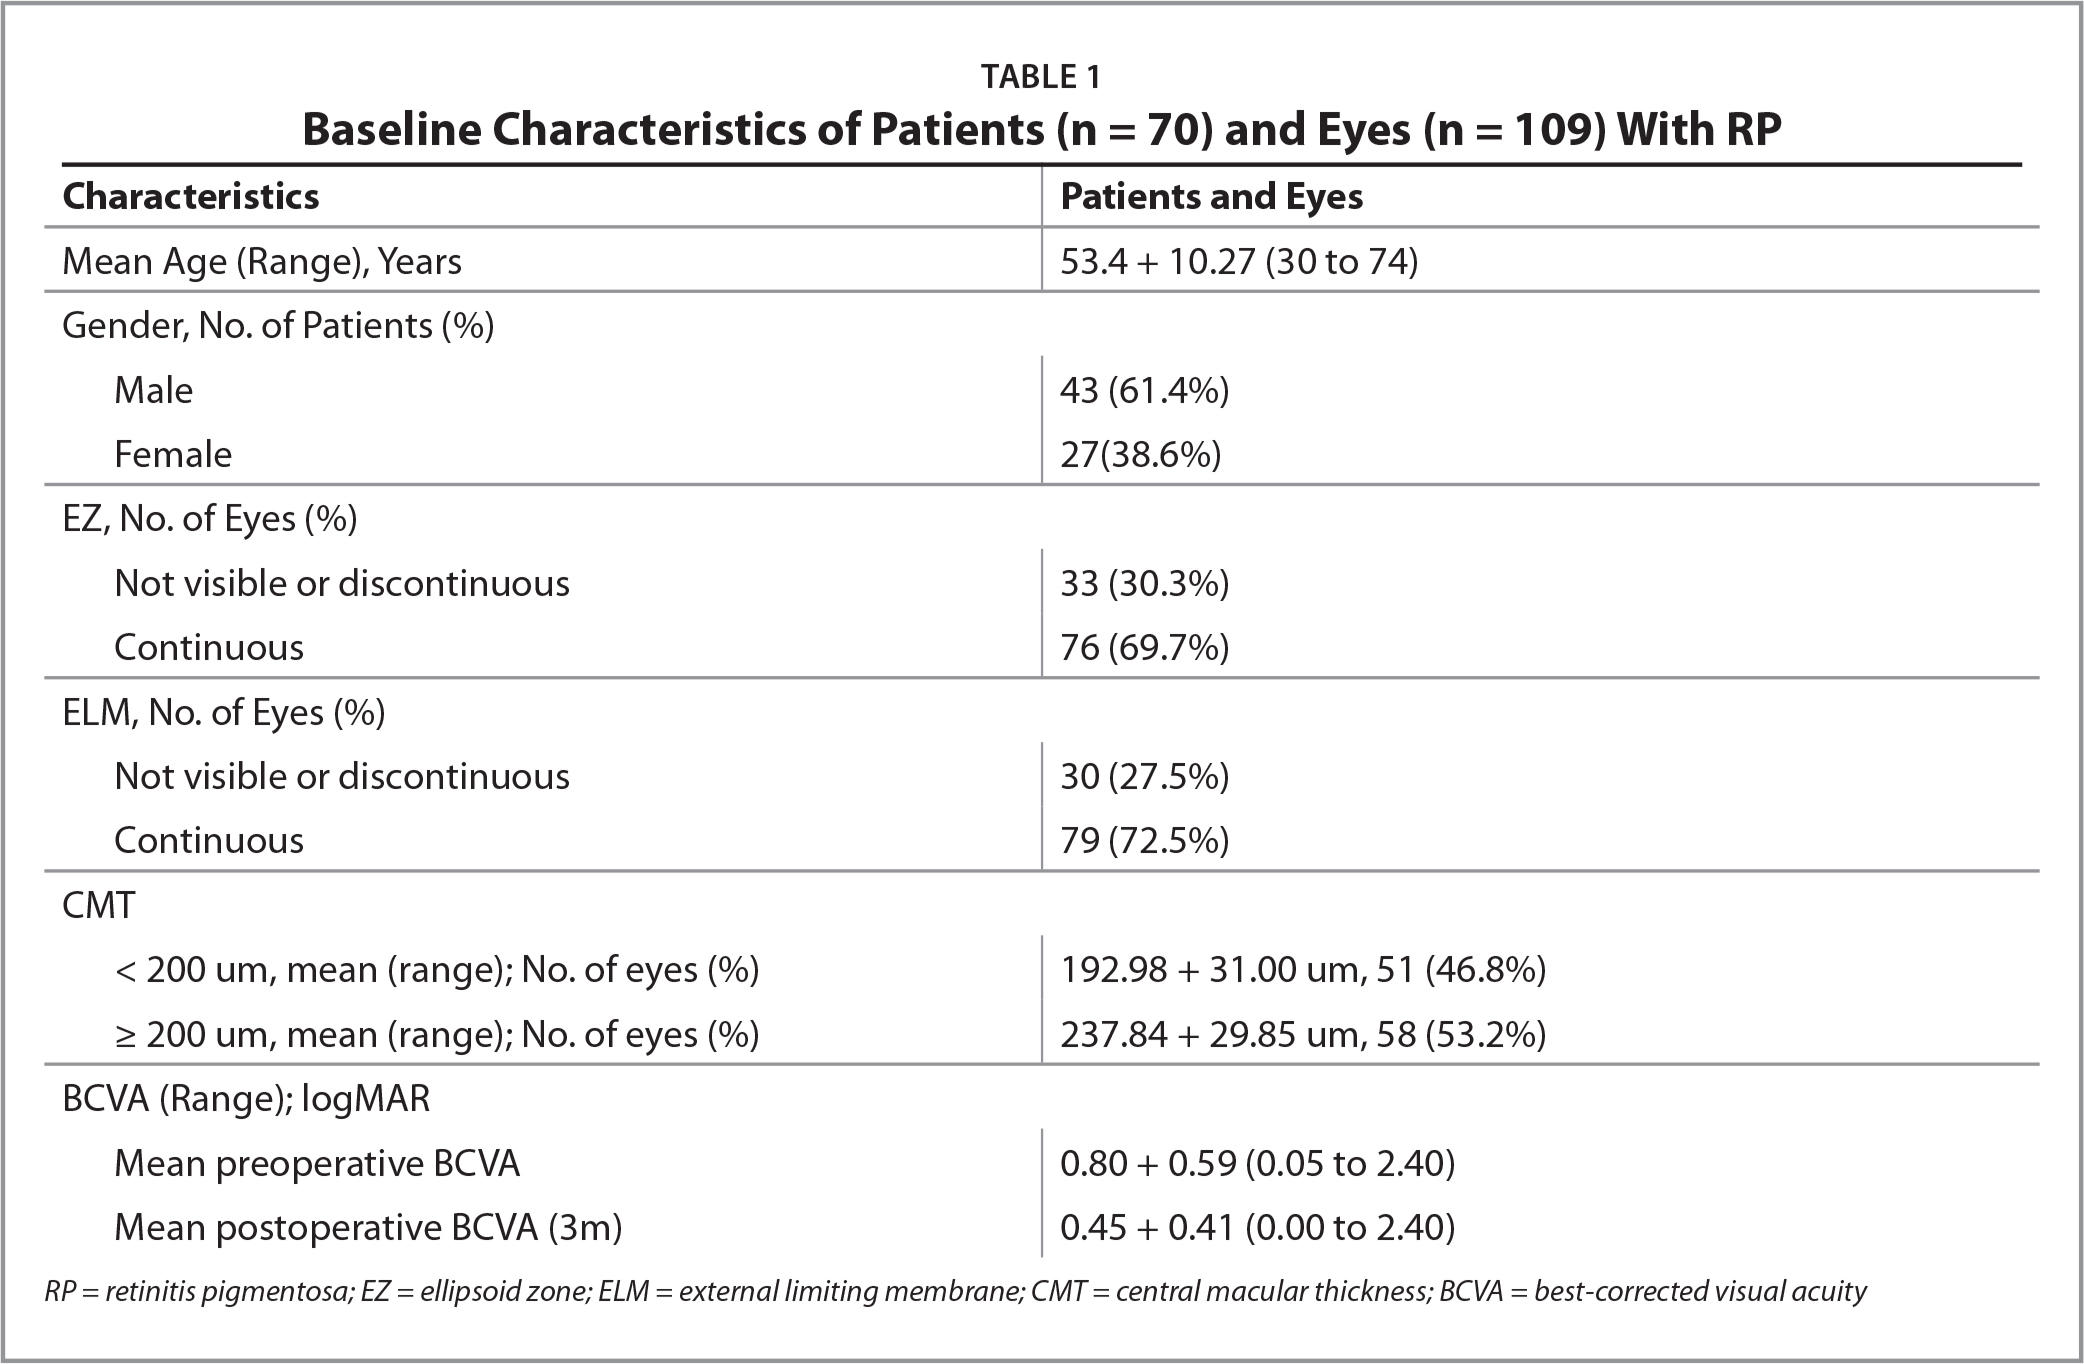 Baseline Characteristics of Patients (n = 70) and Eyes (n = 109) With RP